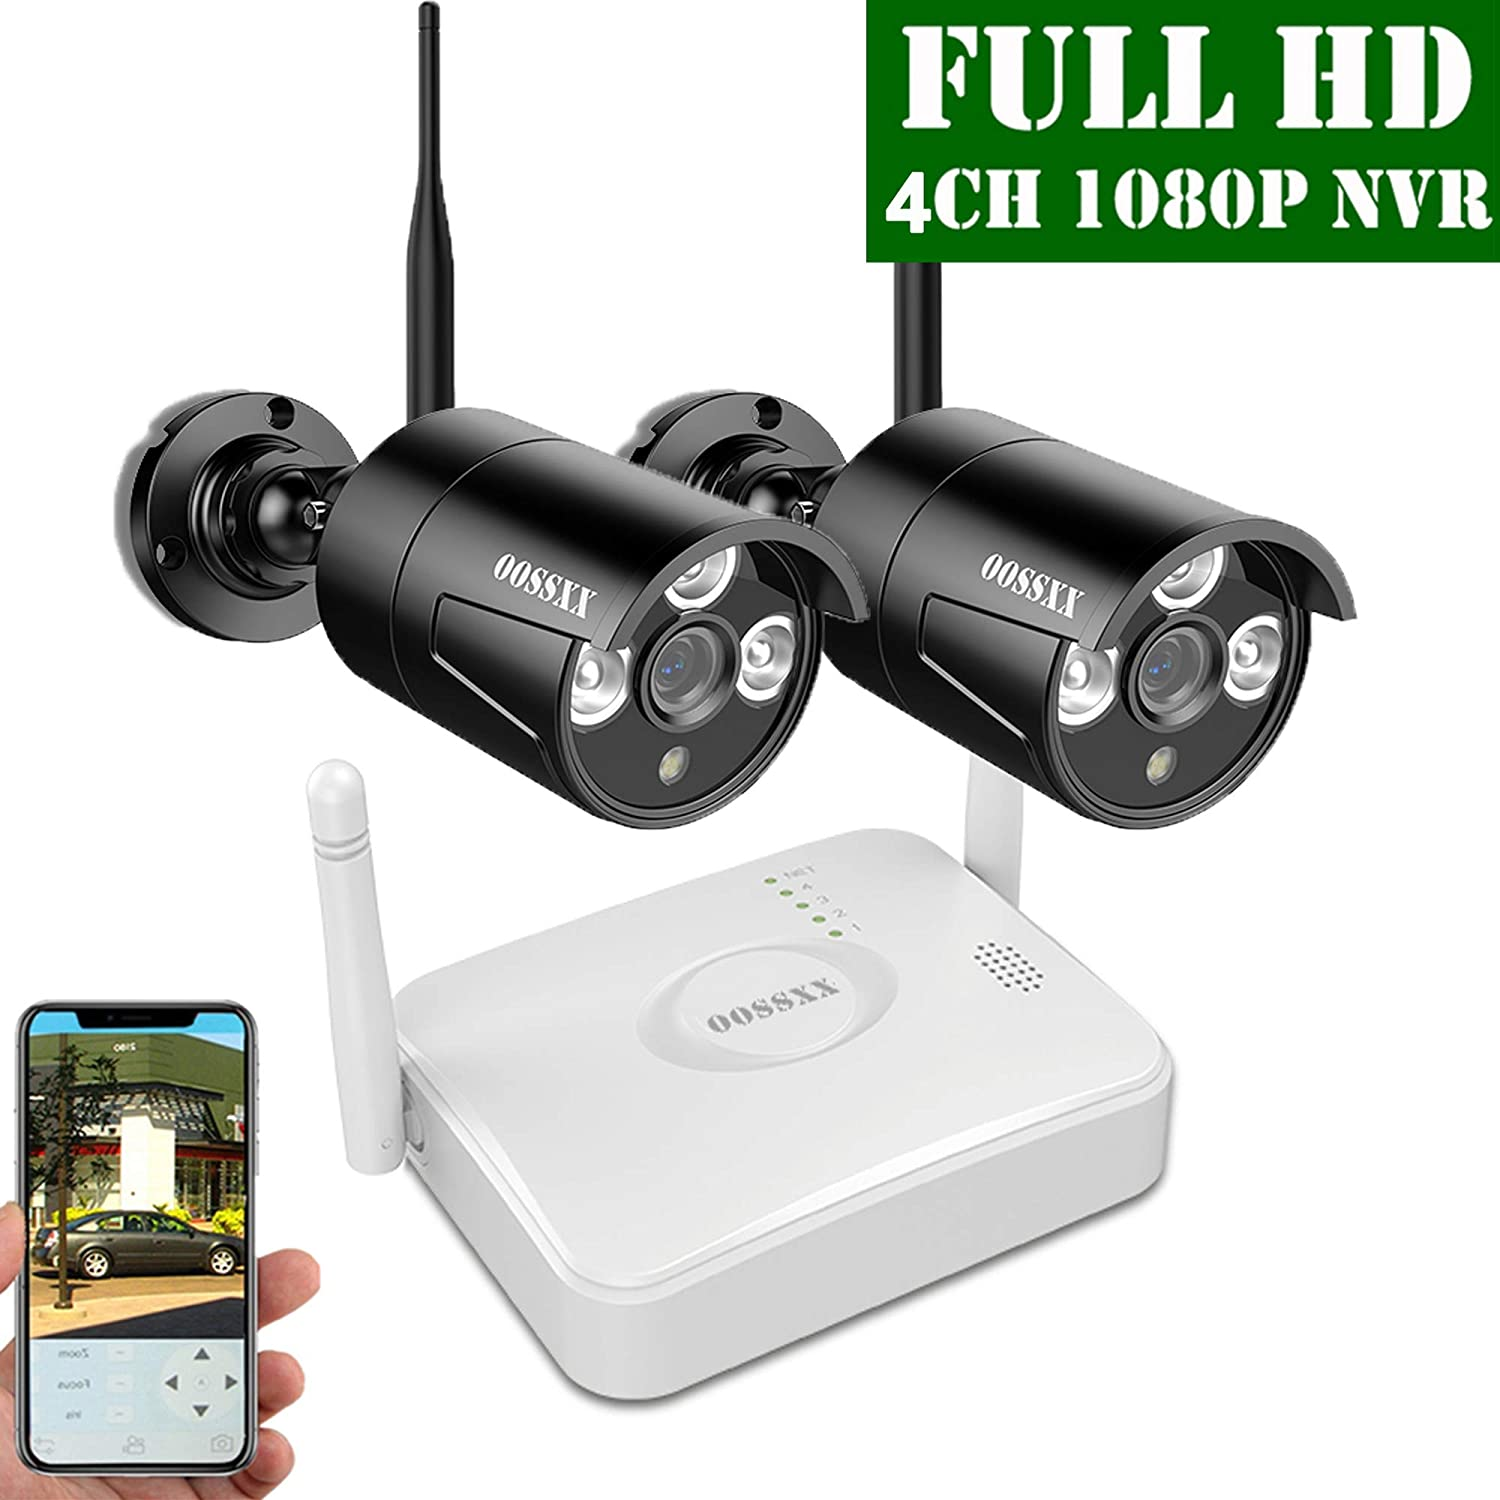 2019 Update OOSSXX 4-Channel HD 1080P Wireless Mini Security Camera System,2Pcs 1080P Wireless Indoor Outdoor IR Bullet IP Cameras,P2P,App,No HDD